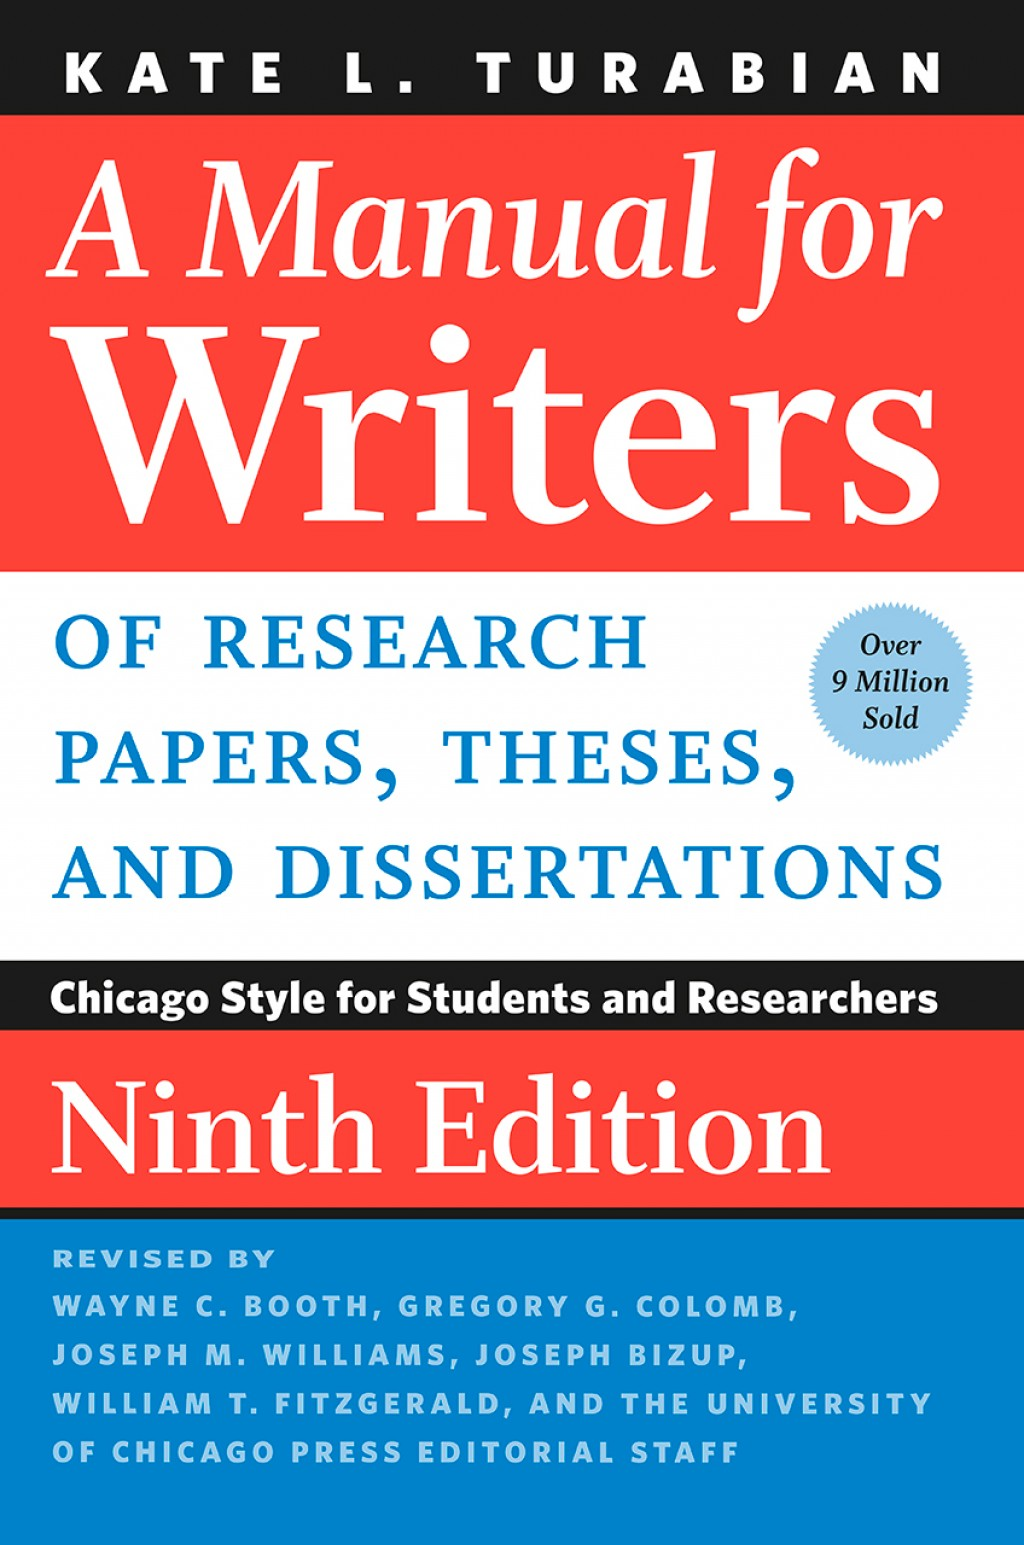 004 Research Paper Manual For Writers Of Papers Theses And Dissertations Eighth Edition Incredible A Pdf Large